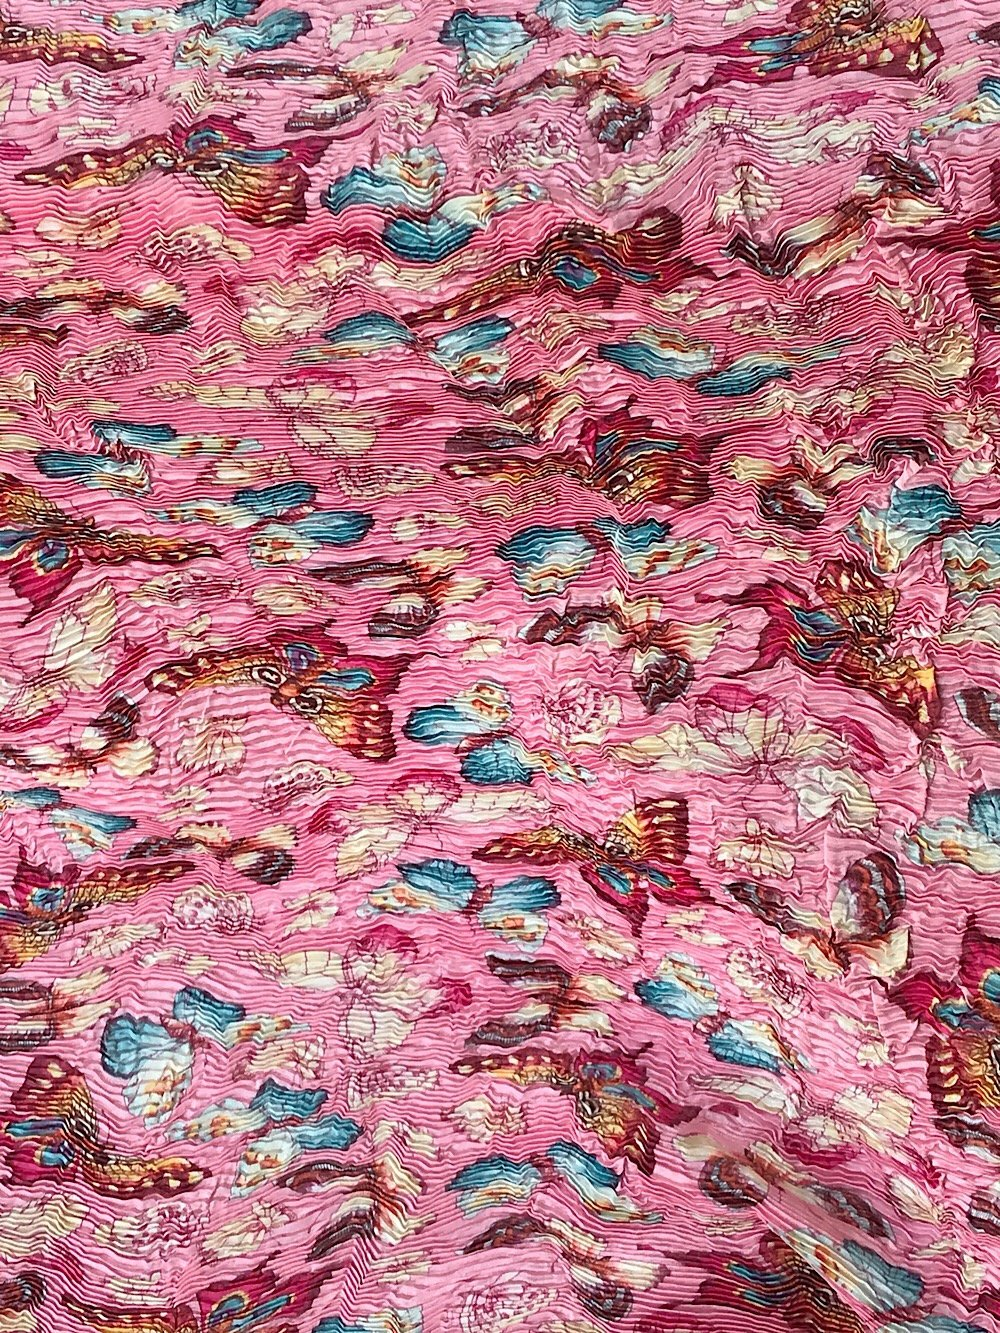 Butterfly print Pleated ruched fabric formal dress high fashion couture dress suiting mother of bride140 cm wid